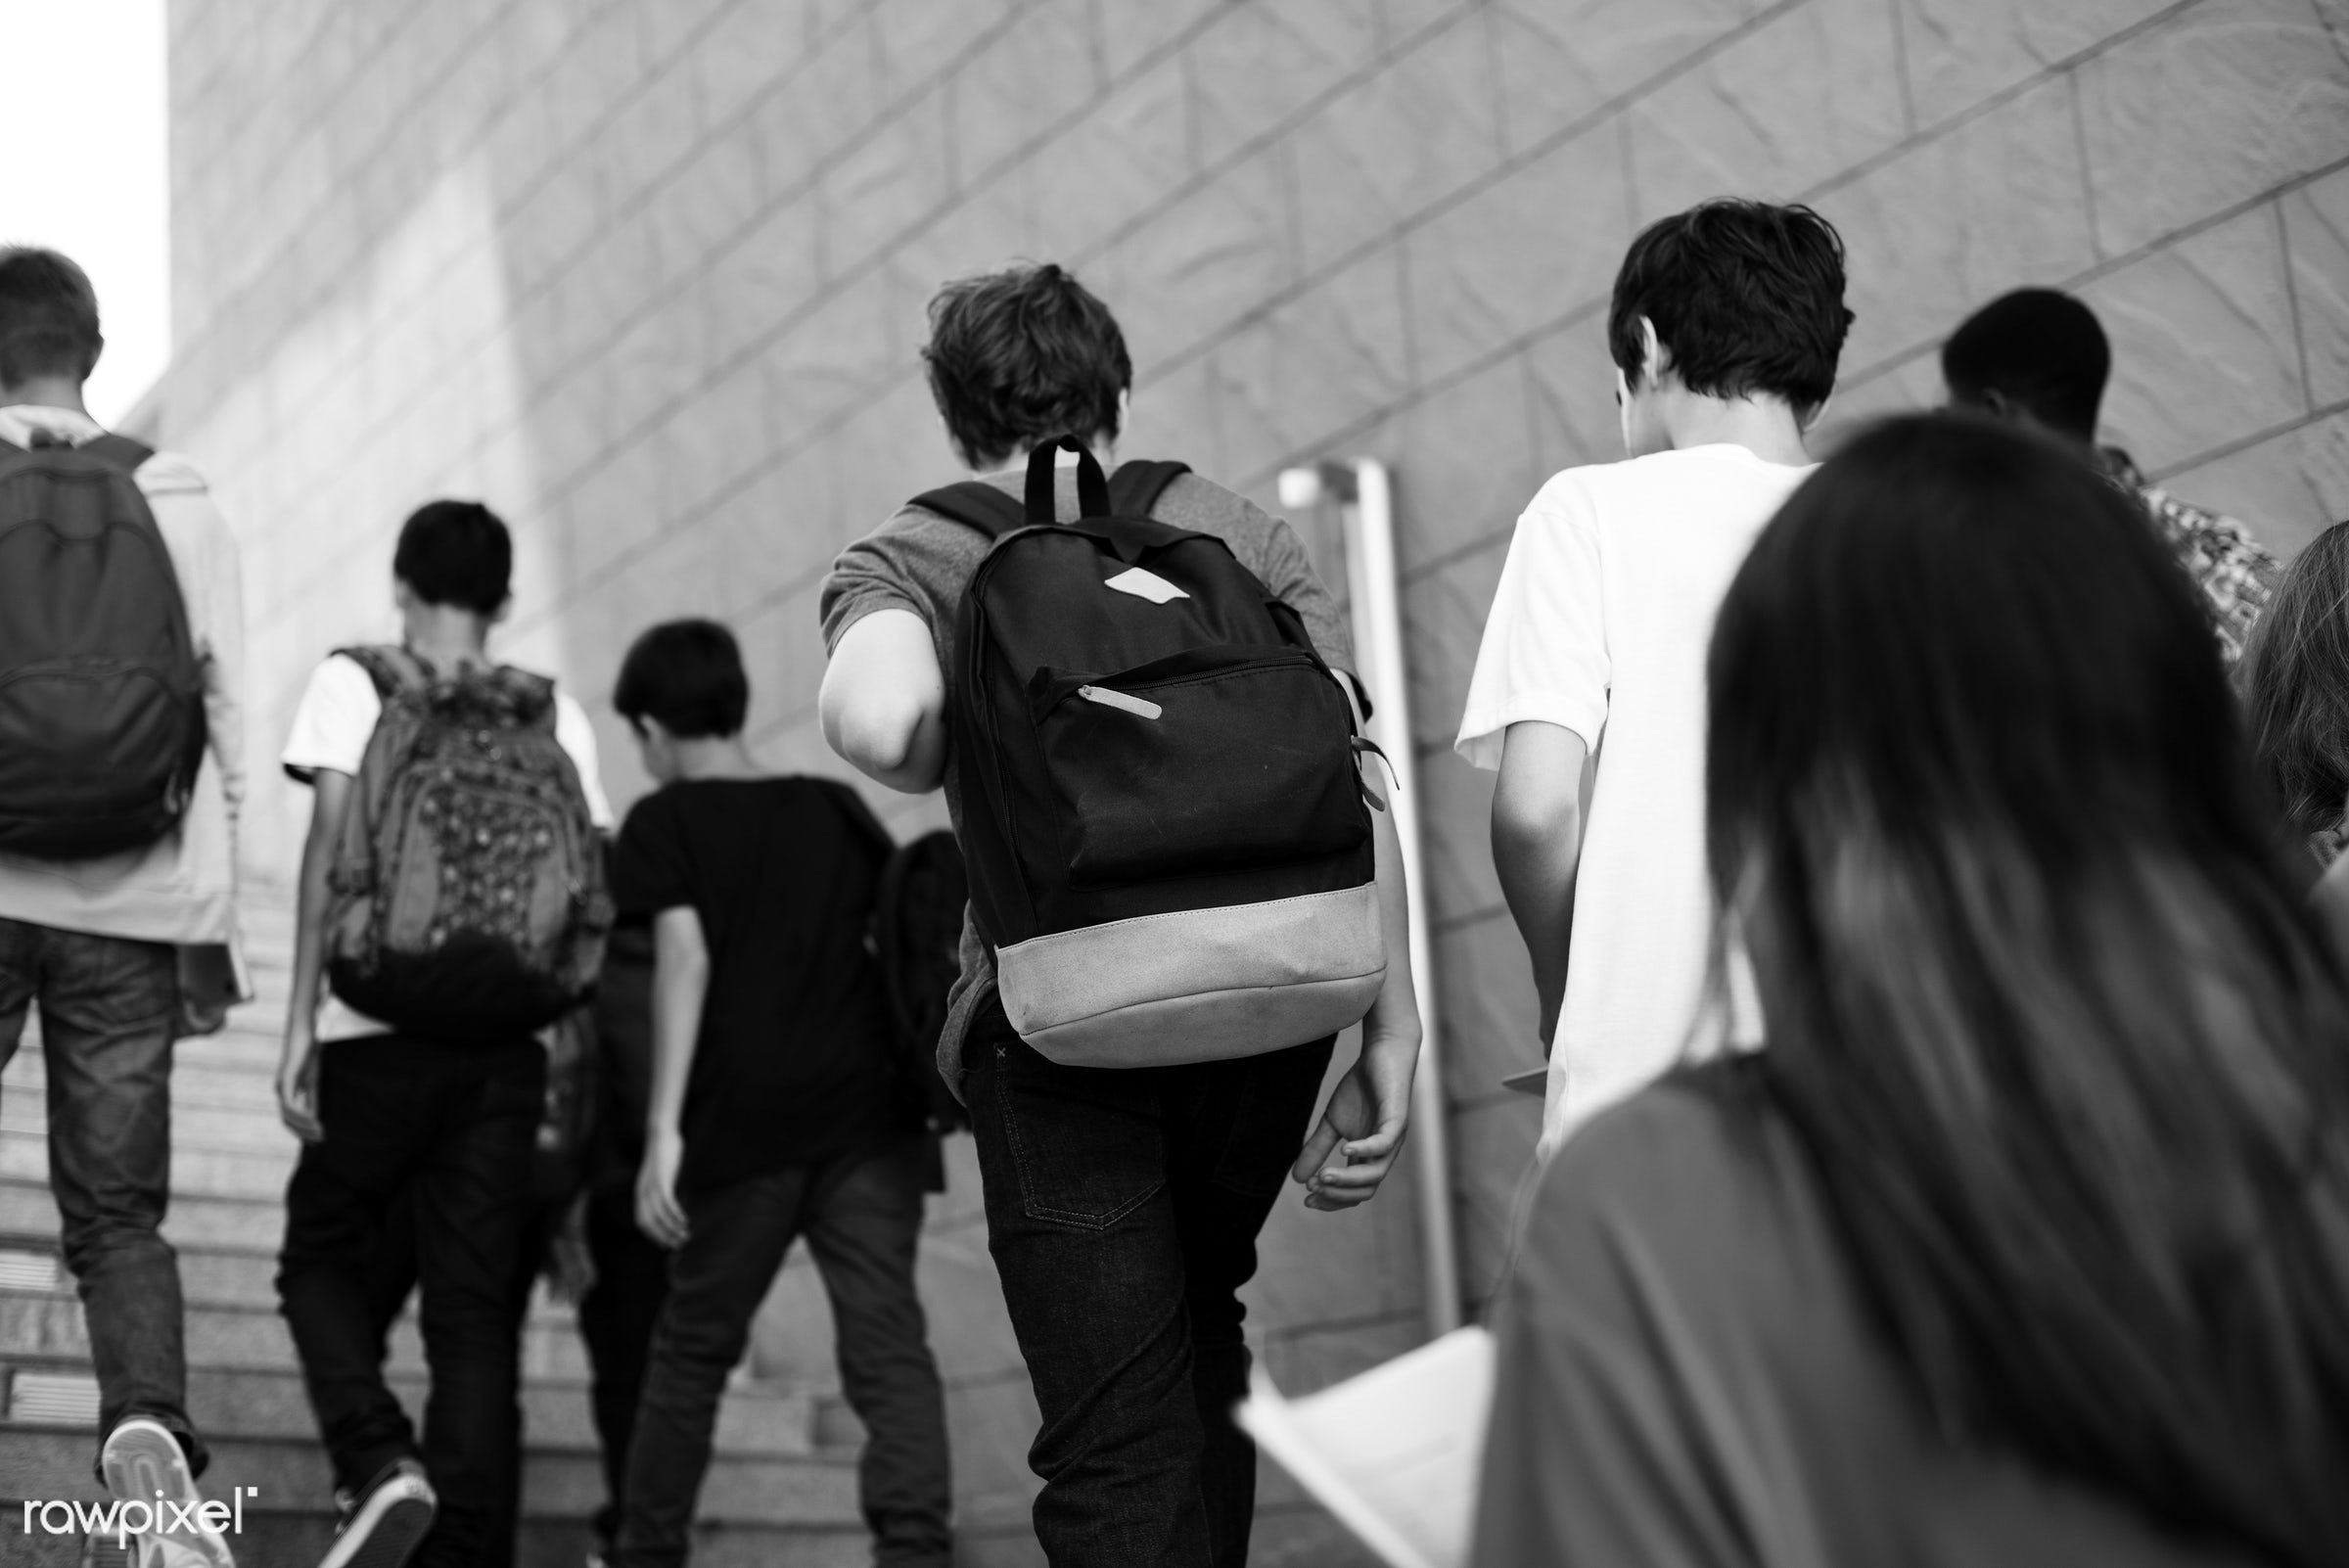 girls, walking, students, diversity, building, steps, up, school, stairway, casual, boys, staircase, path, group, wall,...